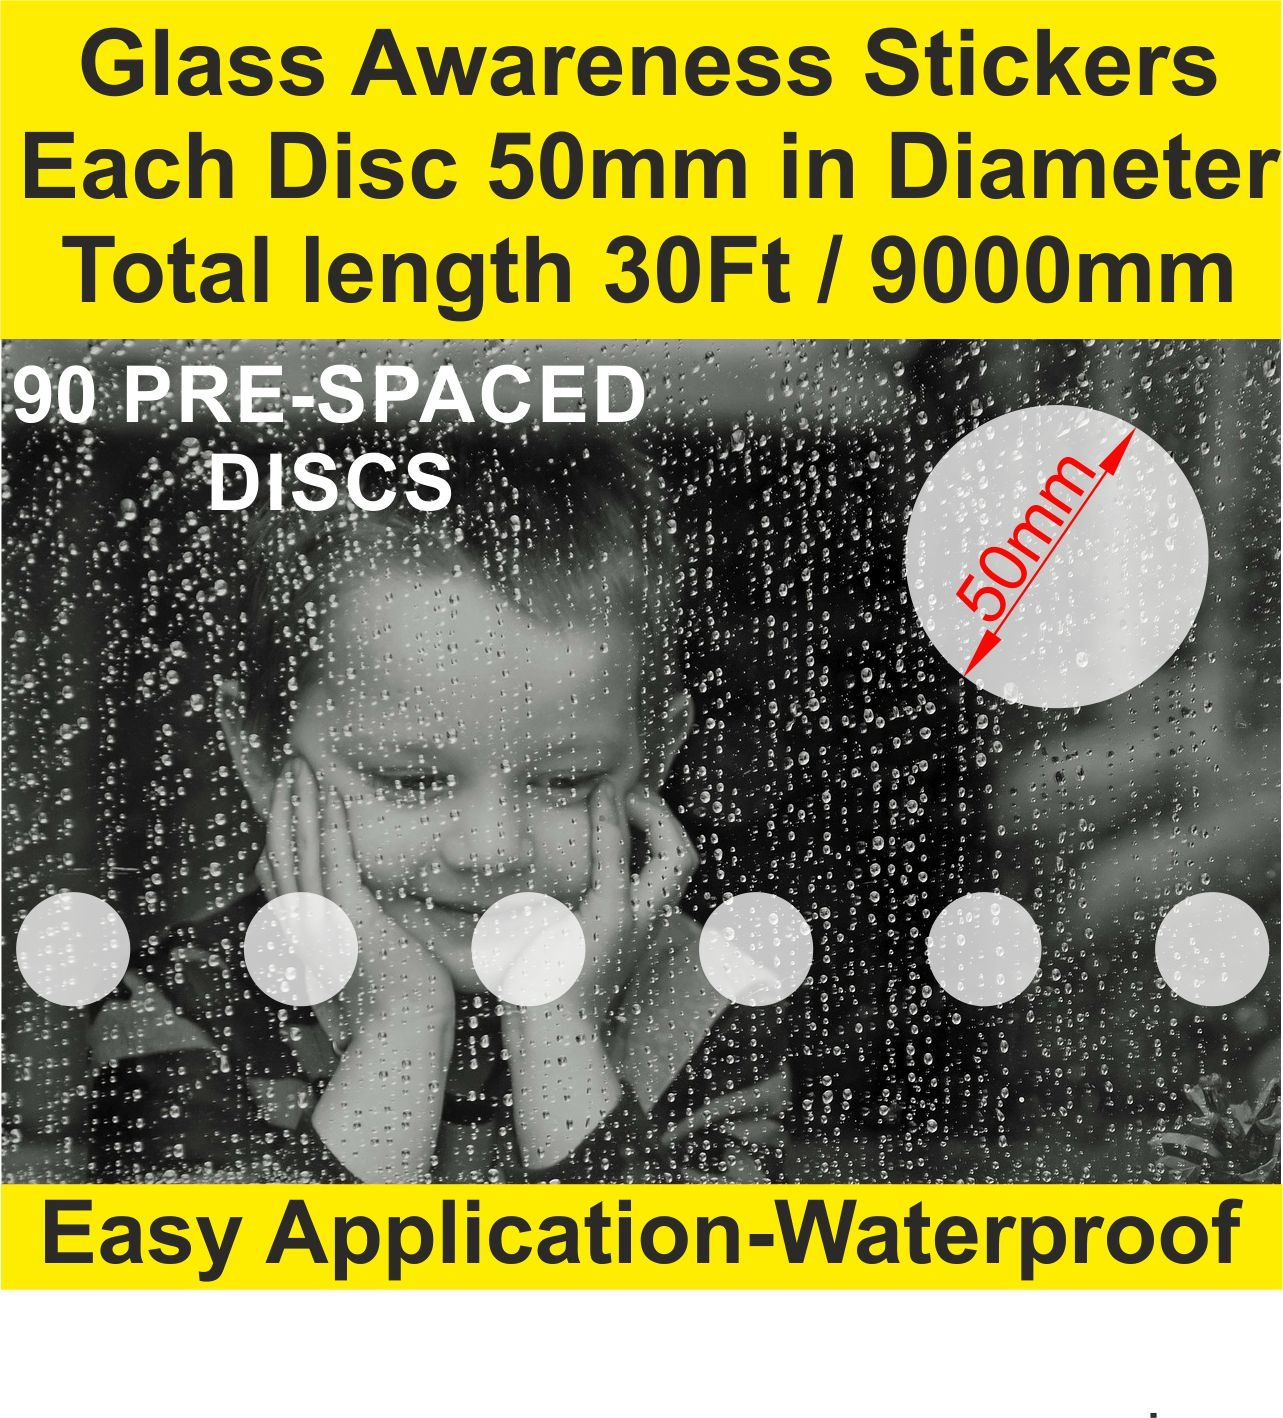 ETCH EFFECT Pack of 90 Glass Awareness Circles Self Adhesive Safety Stickers Manifestation Office Front Shop Home Total Length 50mm X 9000mm / 30Ft